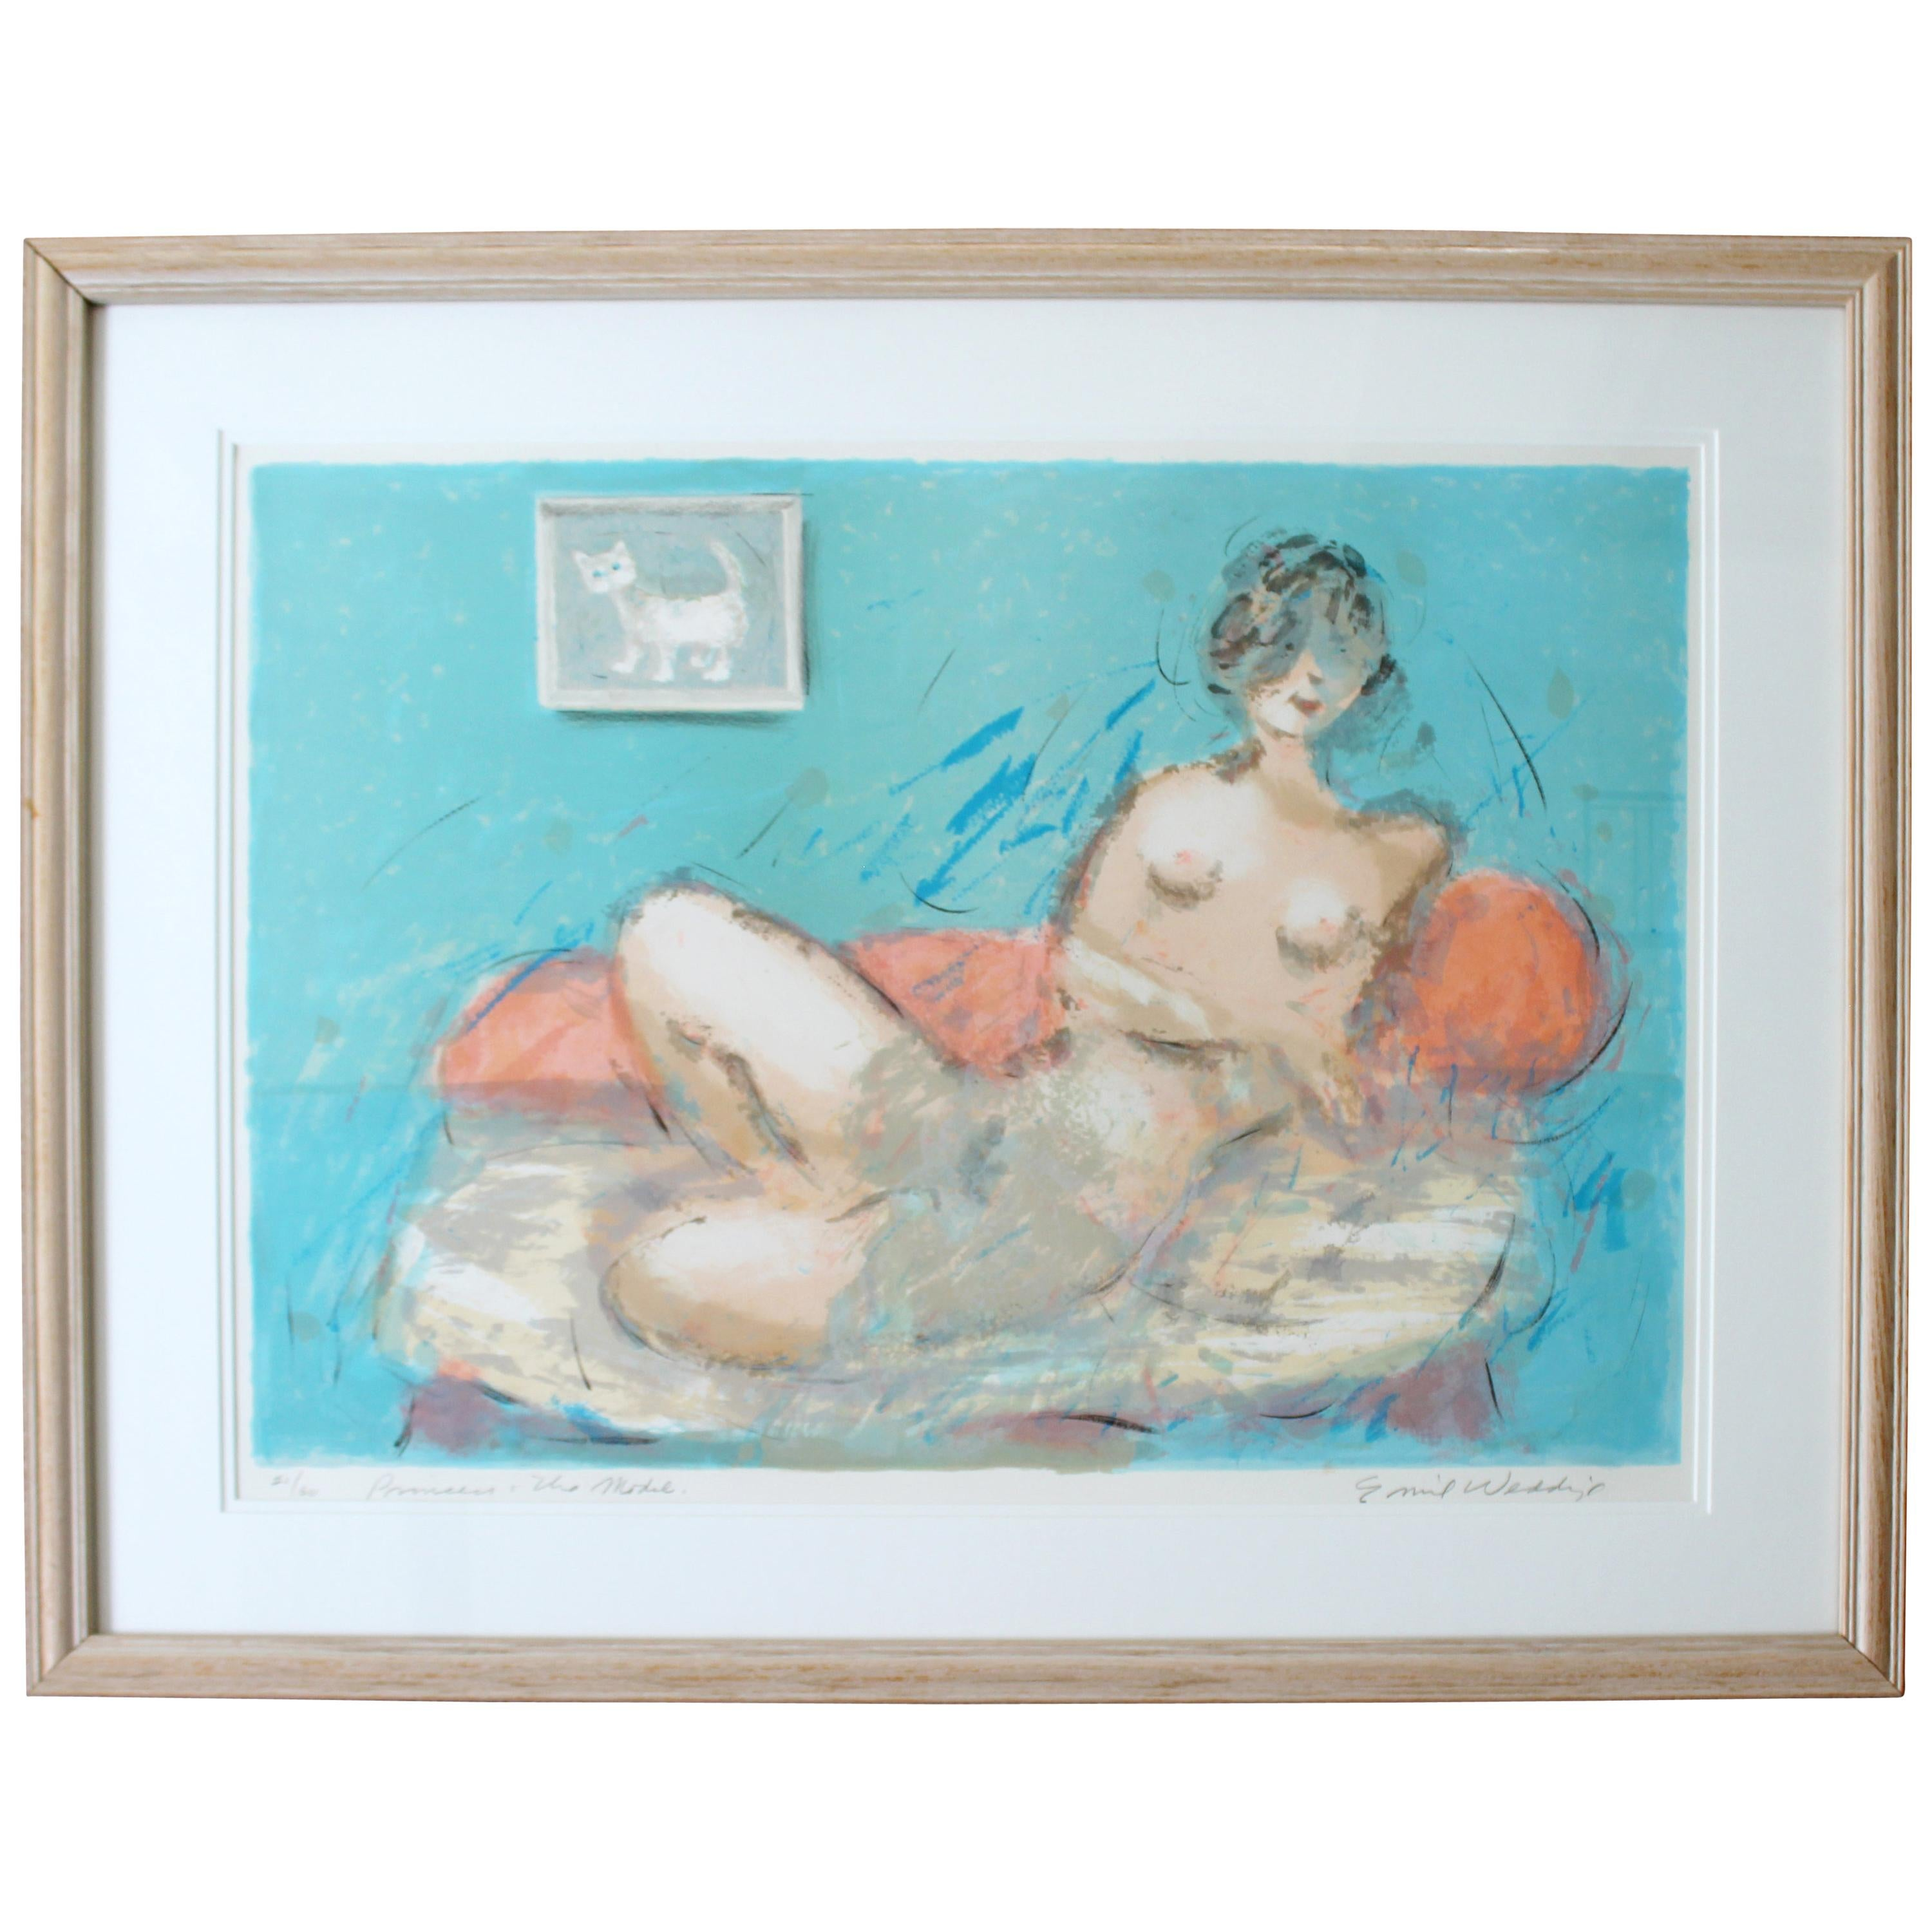 Mid-Century Modern Framed Emil Weddige Signed Lithograph of Reclining Nude 21/60